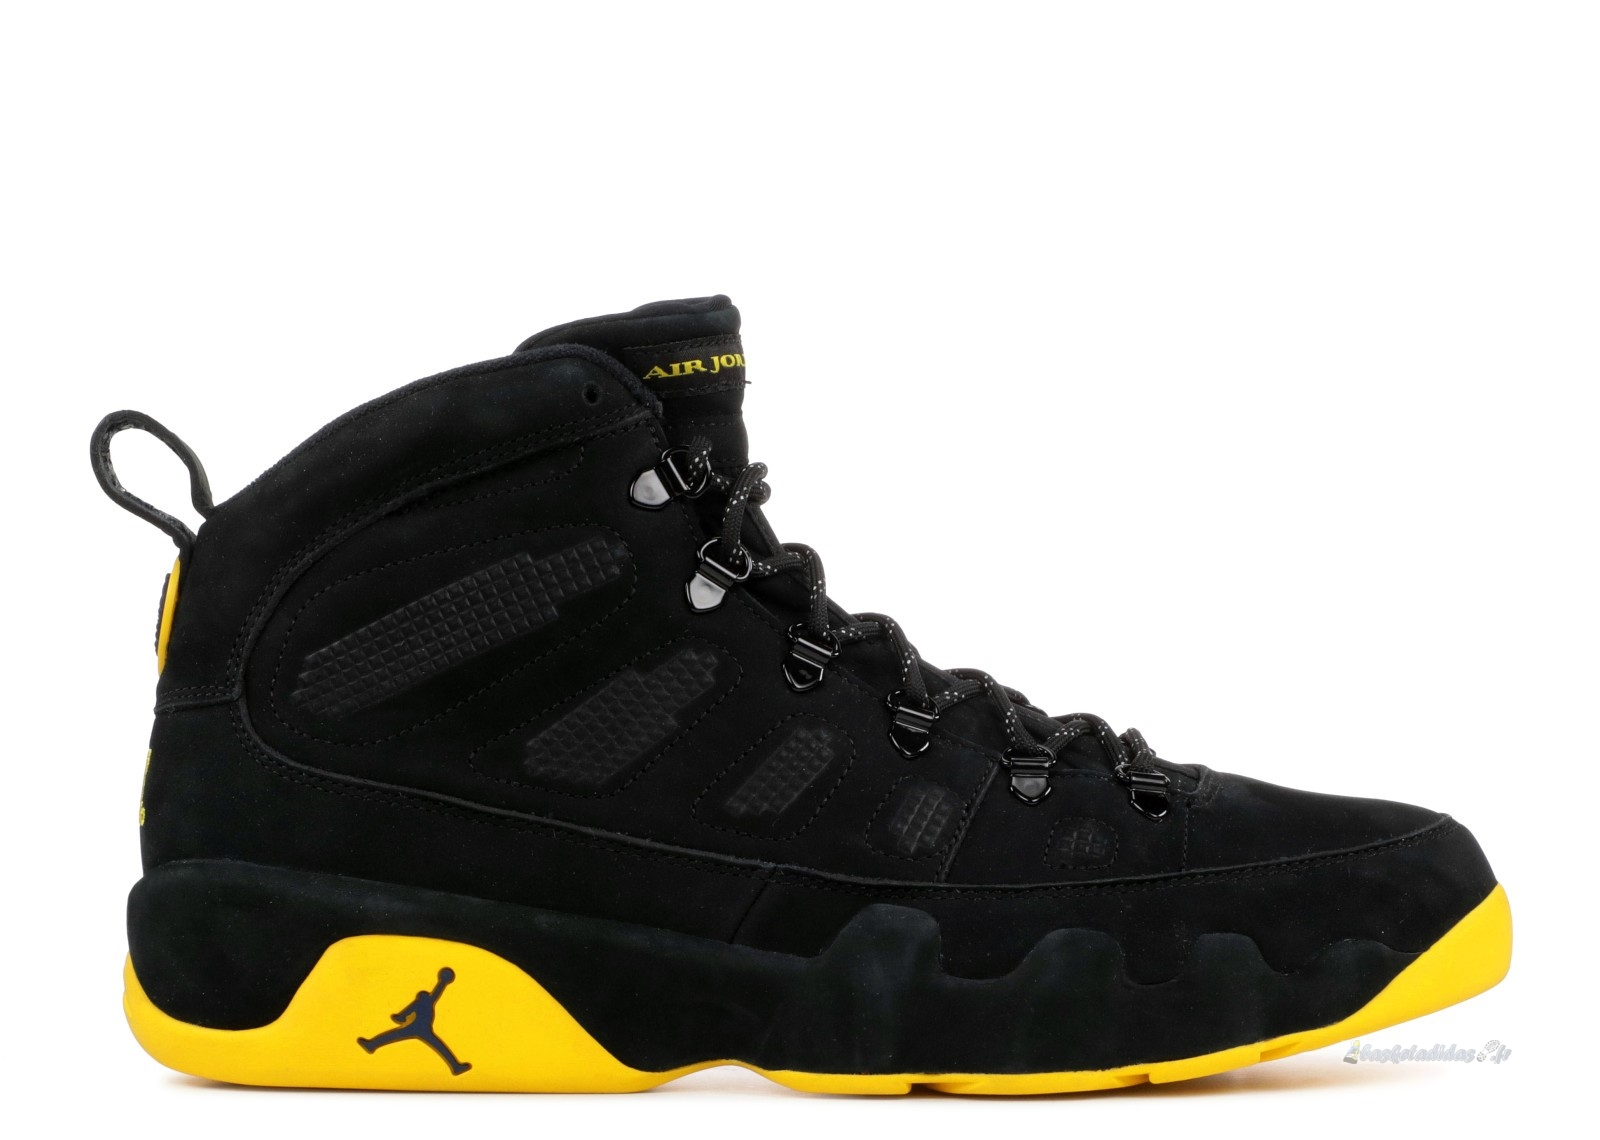 "Chaussure de Basket Air Jordan 9 Retro Boot ""Michigan Psny Pe"" Noir Jaune (mnjdls-266817838)"